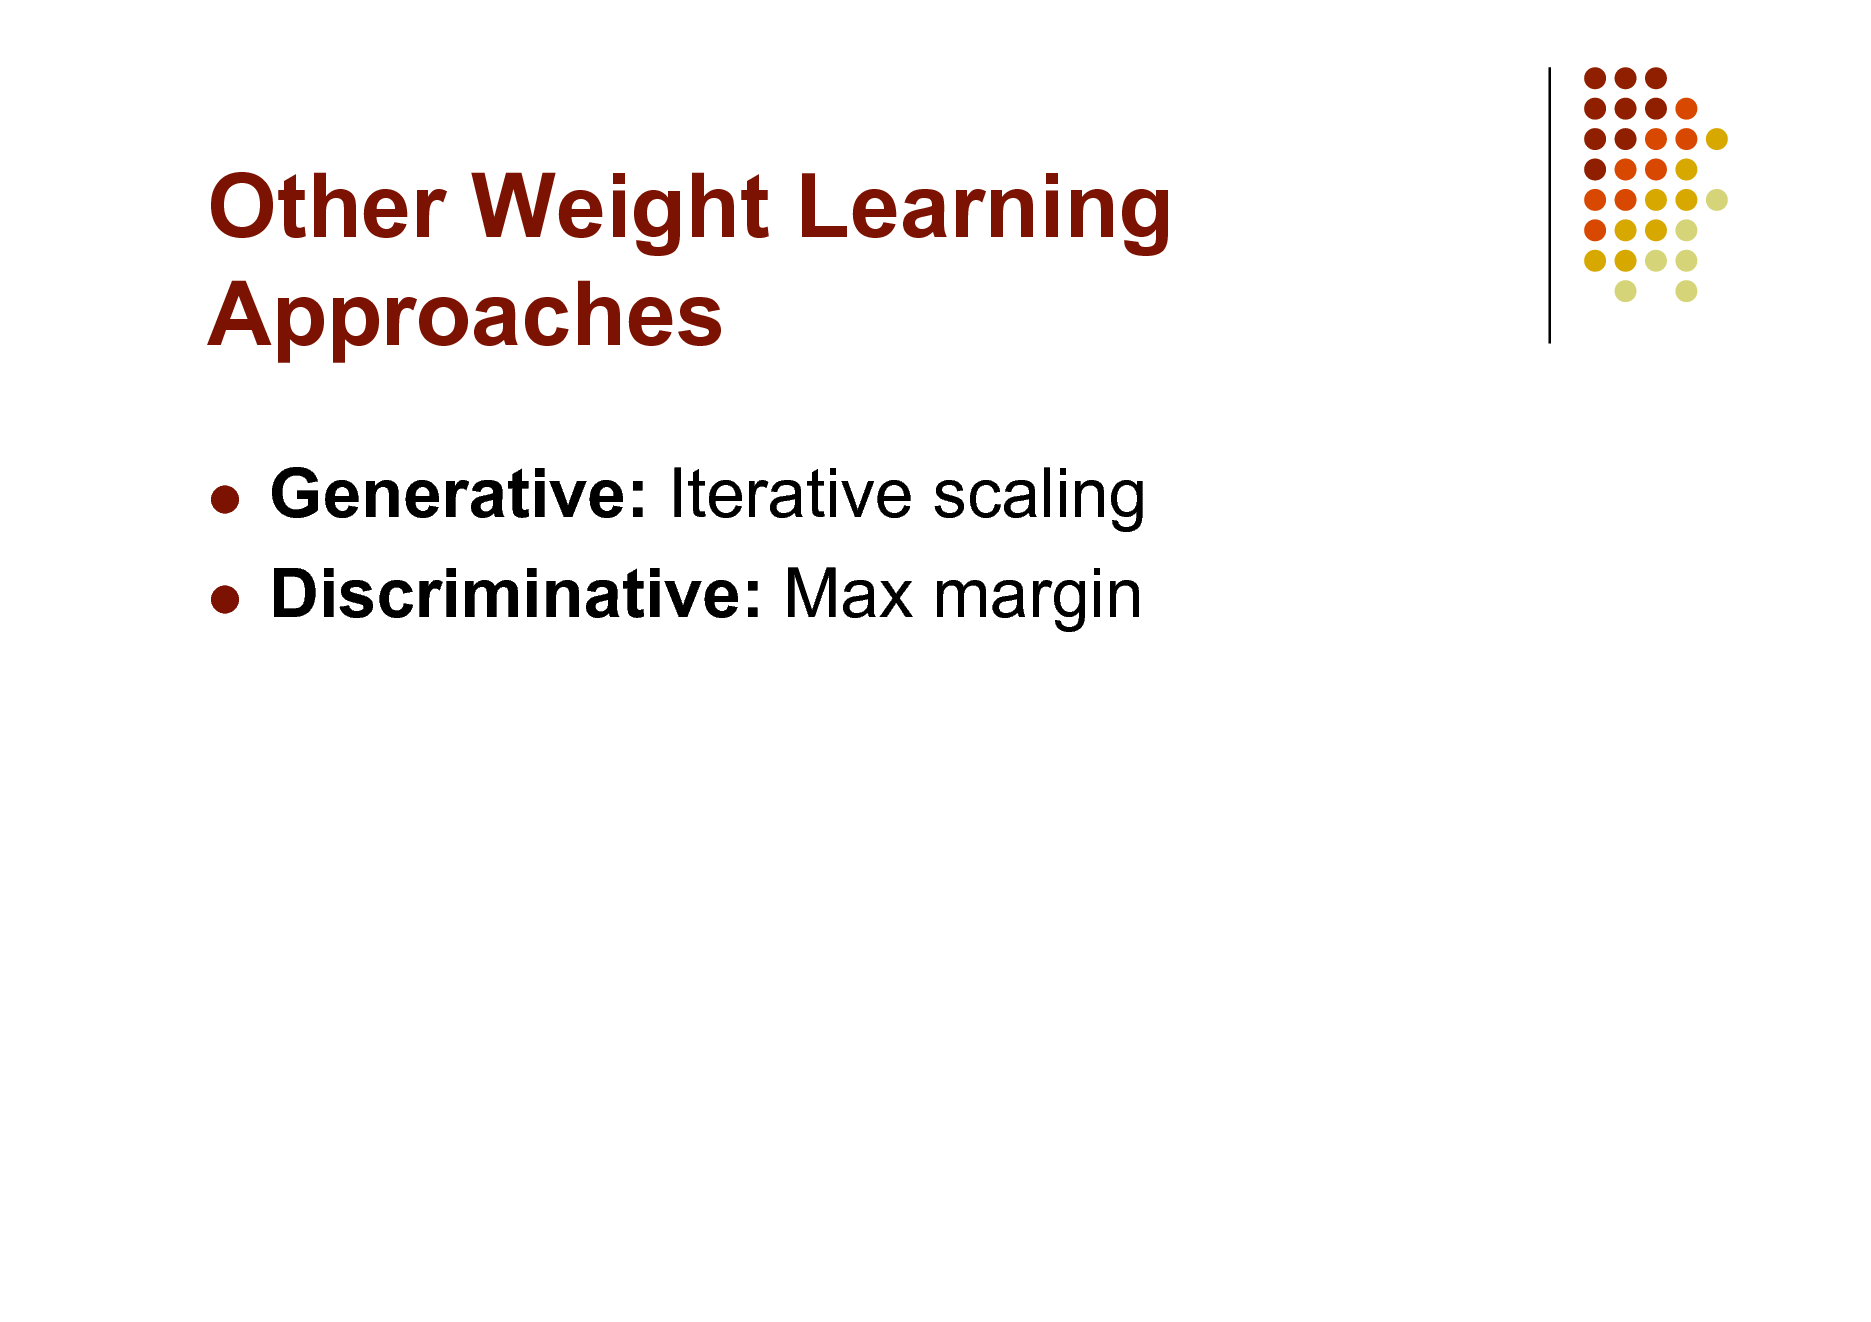 Slide: Other Weight Learning Approaches Generative: Iterative scaling  Discriminative: Max margin